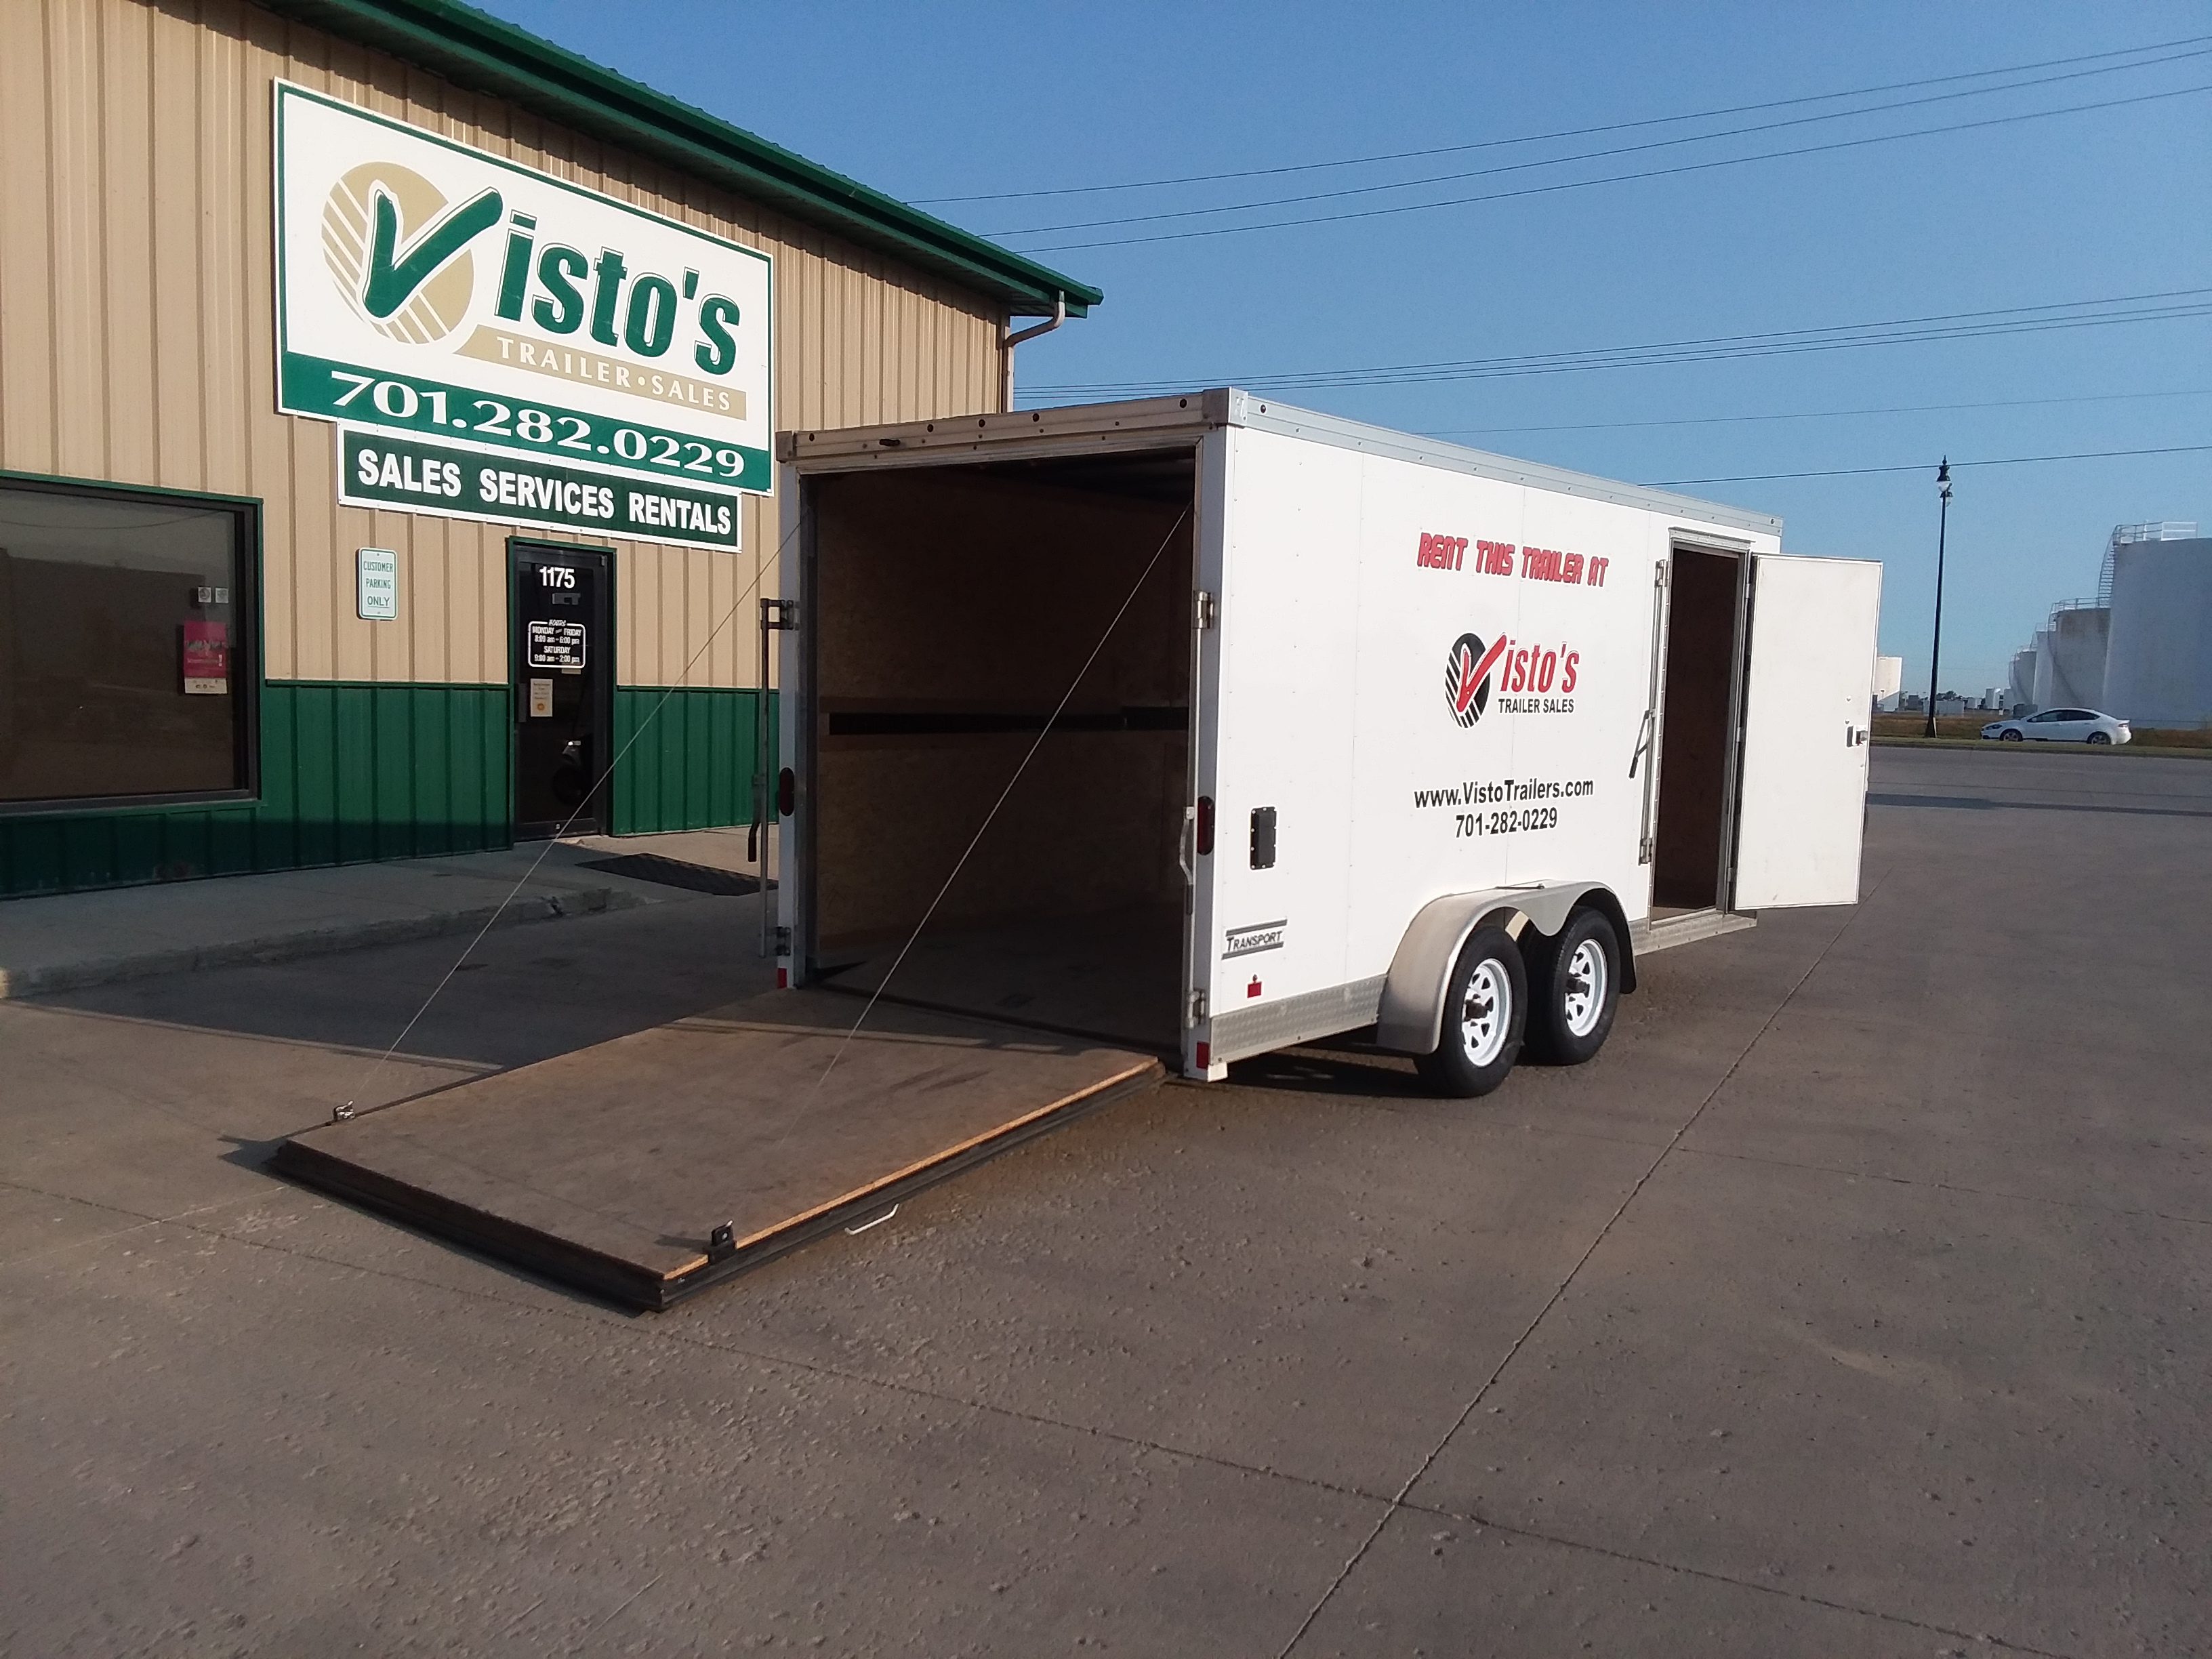 Rentals | Trailers for Sale in North Dakota – Visto's on 4 blade trailer wiring diagram, 7 blade rv wiring, 7 blade trailer harness, 7 pin trailer connector diagram, 7 blade trailer wire, 7 blade trailer plug, 7 blade lighting diagram, 6 blade trailer wiring diagram, 7 blade wiring harness, 5 blade trailer wiring diagram,